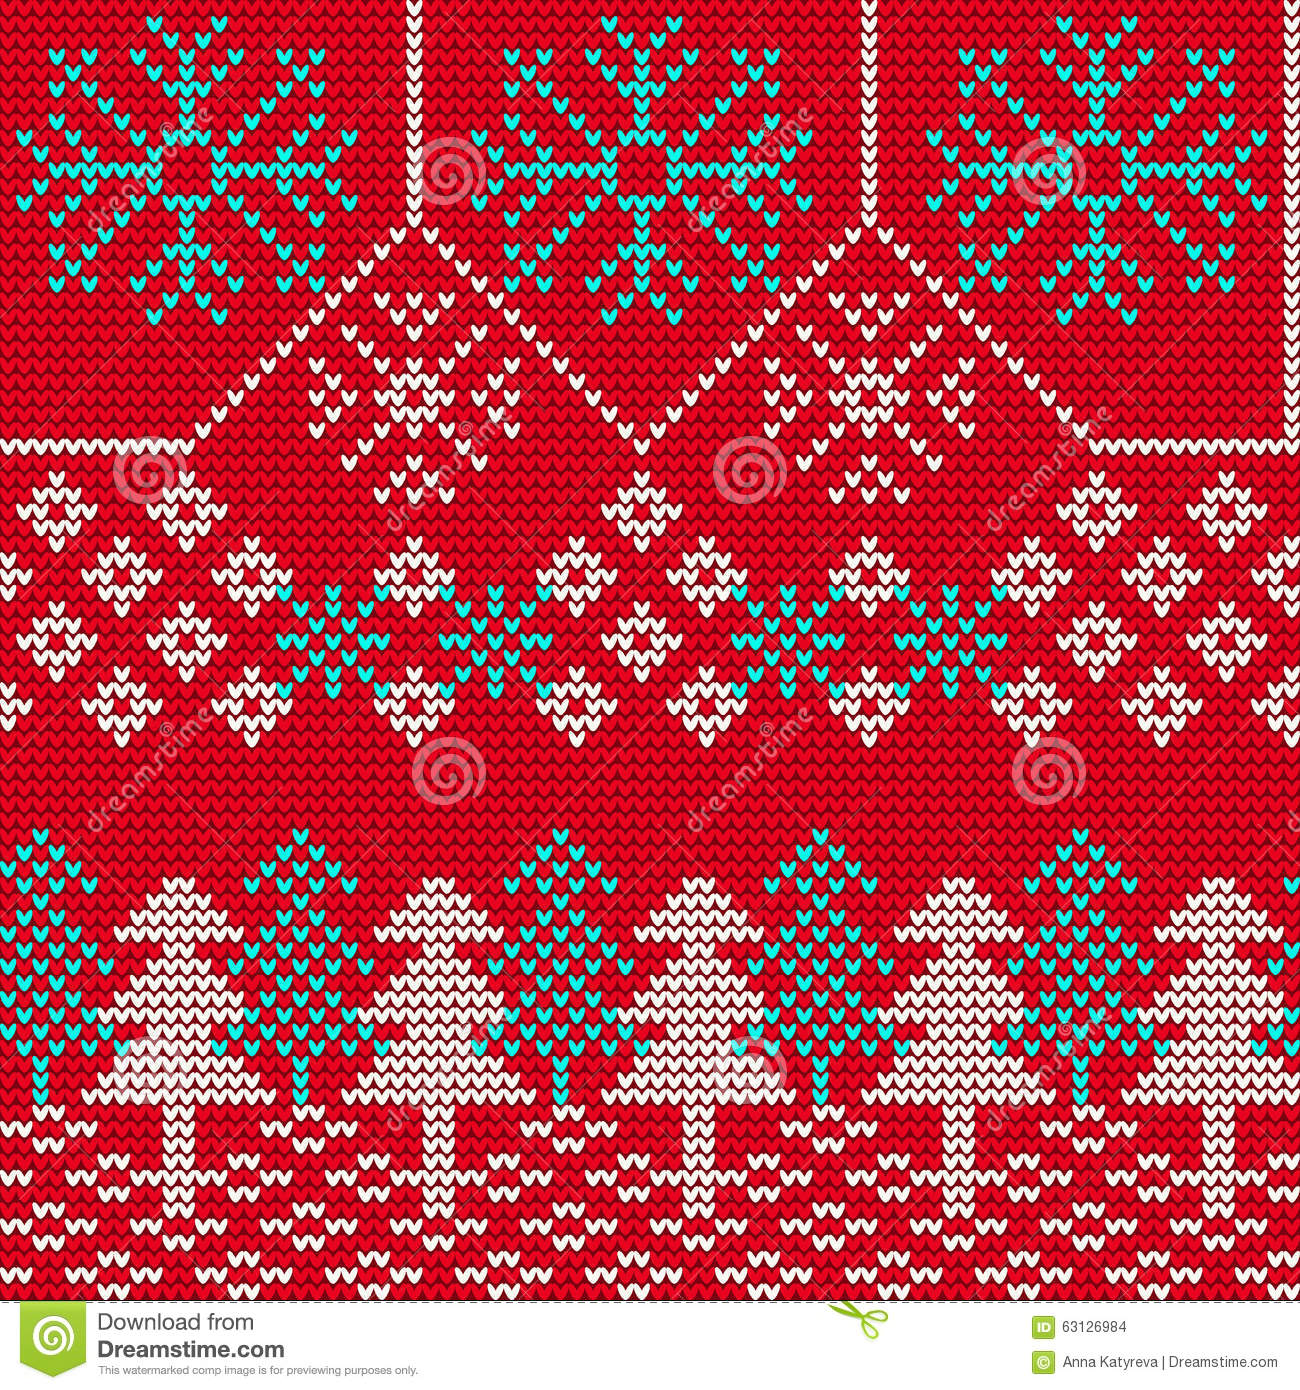 Ugly sweater Background 1 stock vector. Illustration of ...